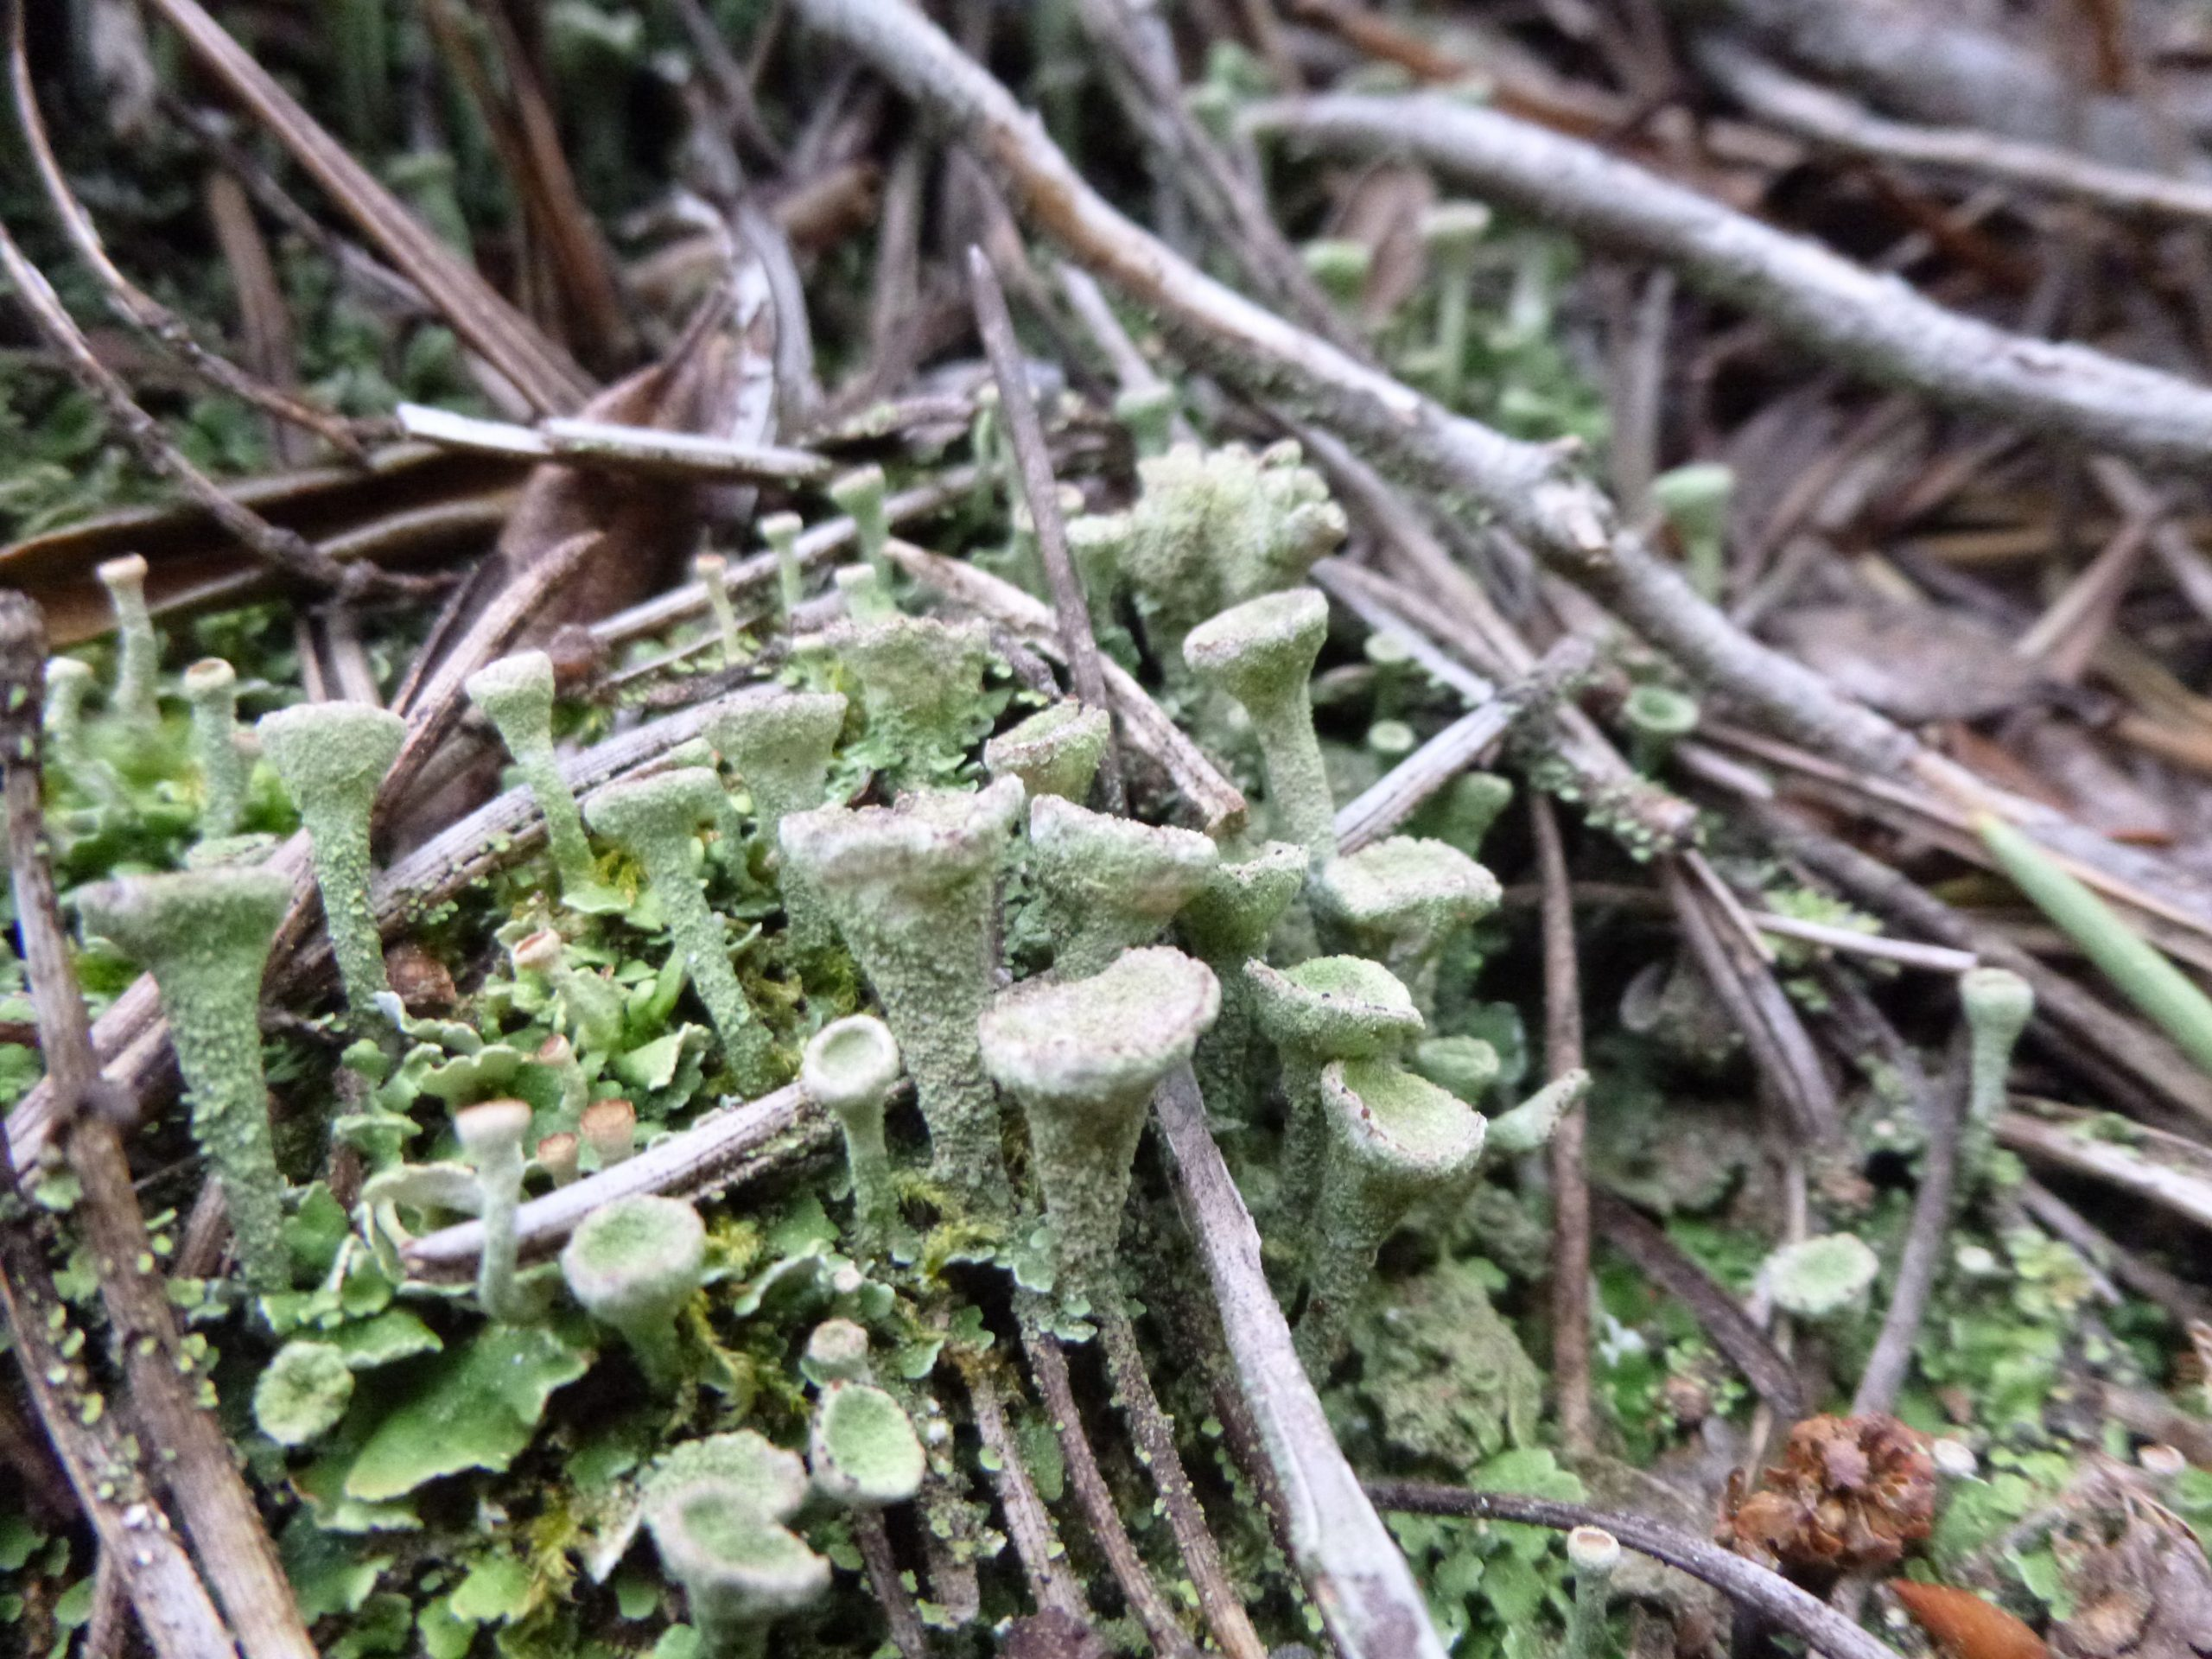 Pixie Cup Lichen, a type of lichen that looks like little bowls on tall stalks.